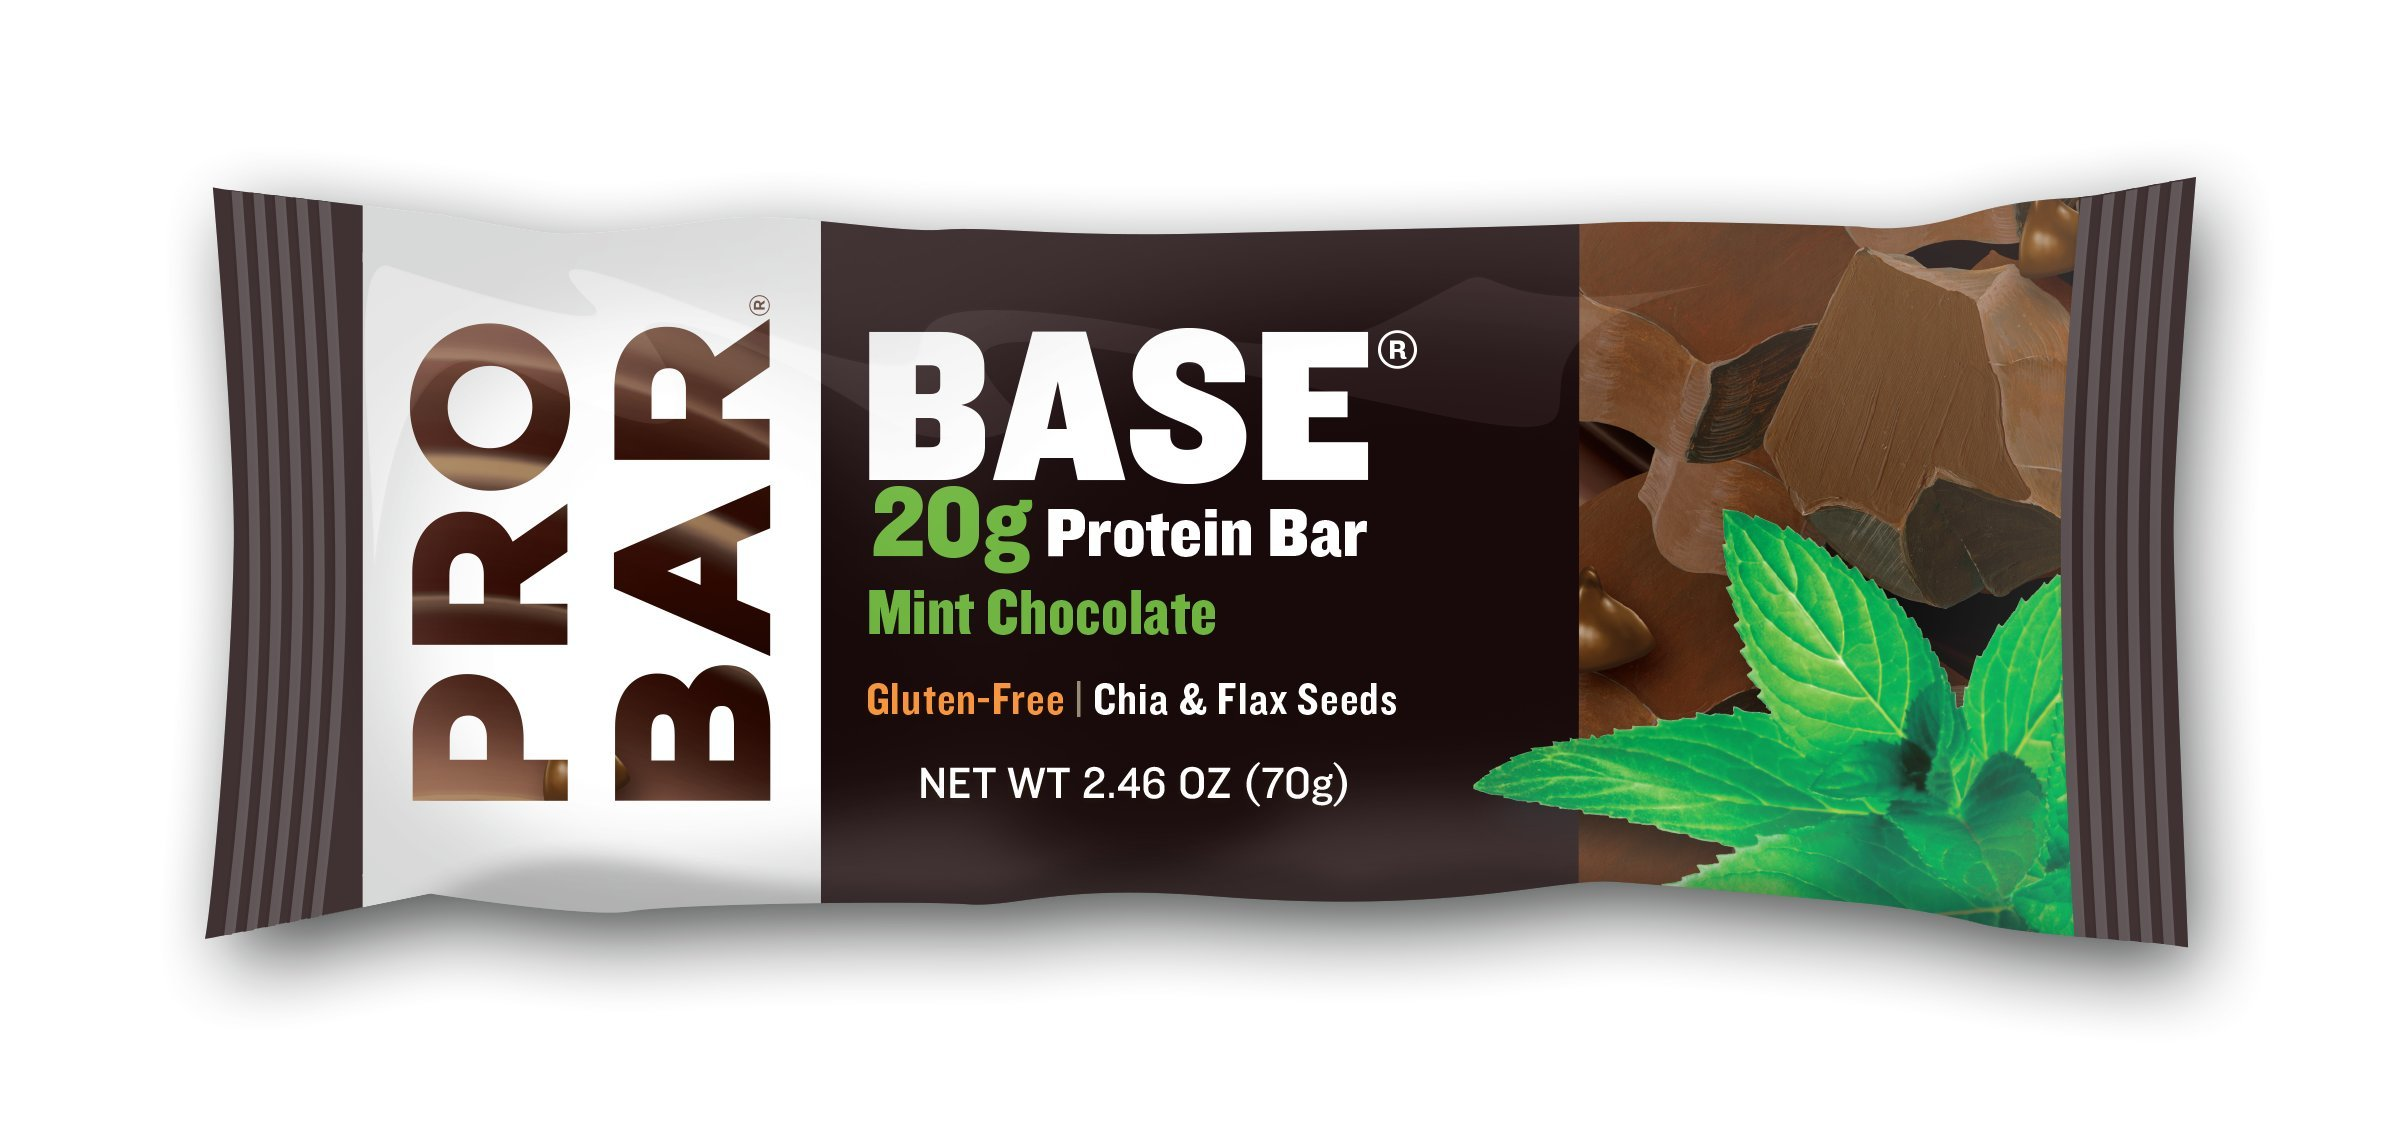 We Tried It: A Liver-Based Protein Bar We Tried It: A Liver-Based Protein Bar new foto